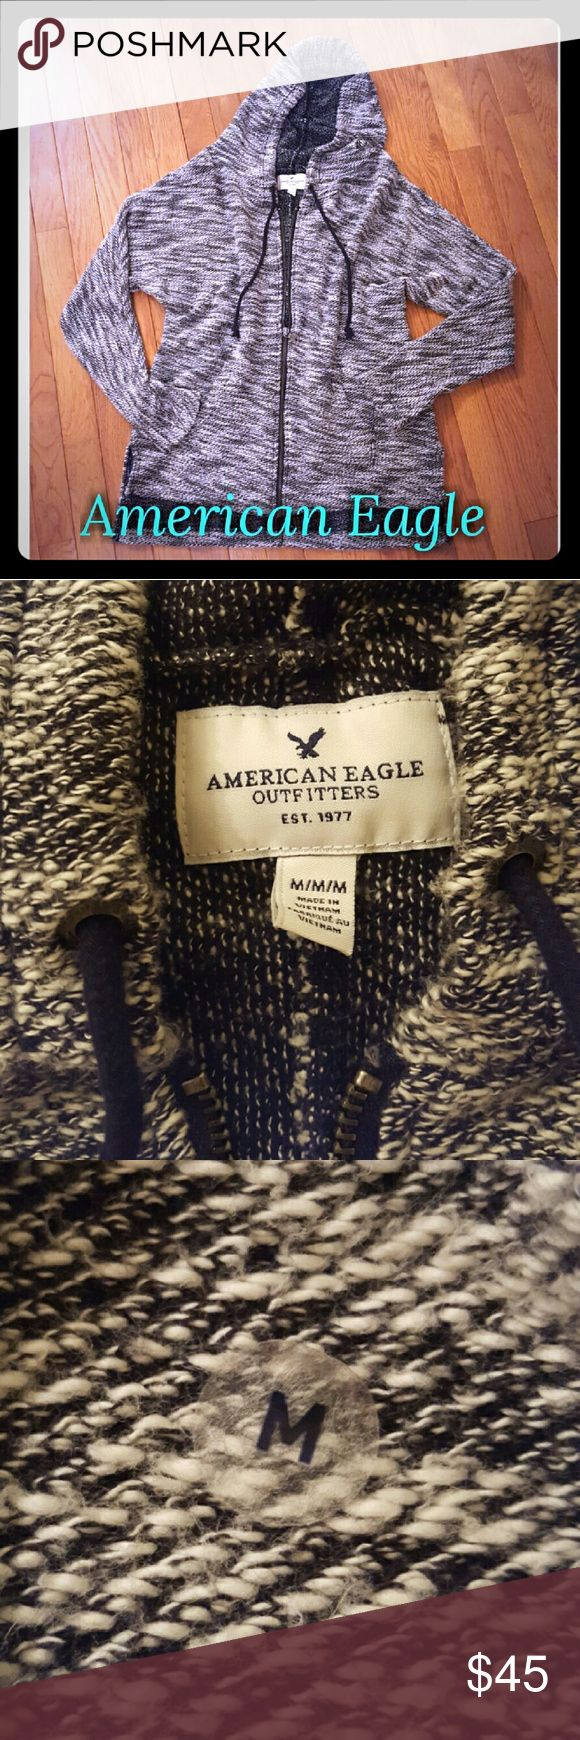 NWOT American Eagle Sweater Jacket NWOT.  Never washed or worn.  Still has size sticker on it.  Comes down a little lower in back, perfect to wear with leggings or whatever you want.  So soft and cozy!  Black/white size medium American Eagle Outfitters Jackets & Coats